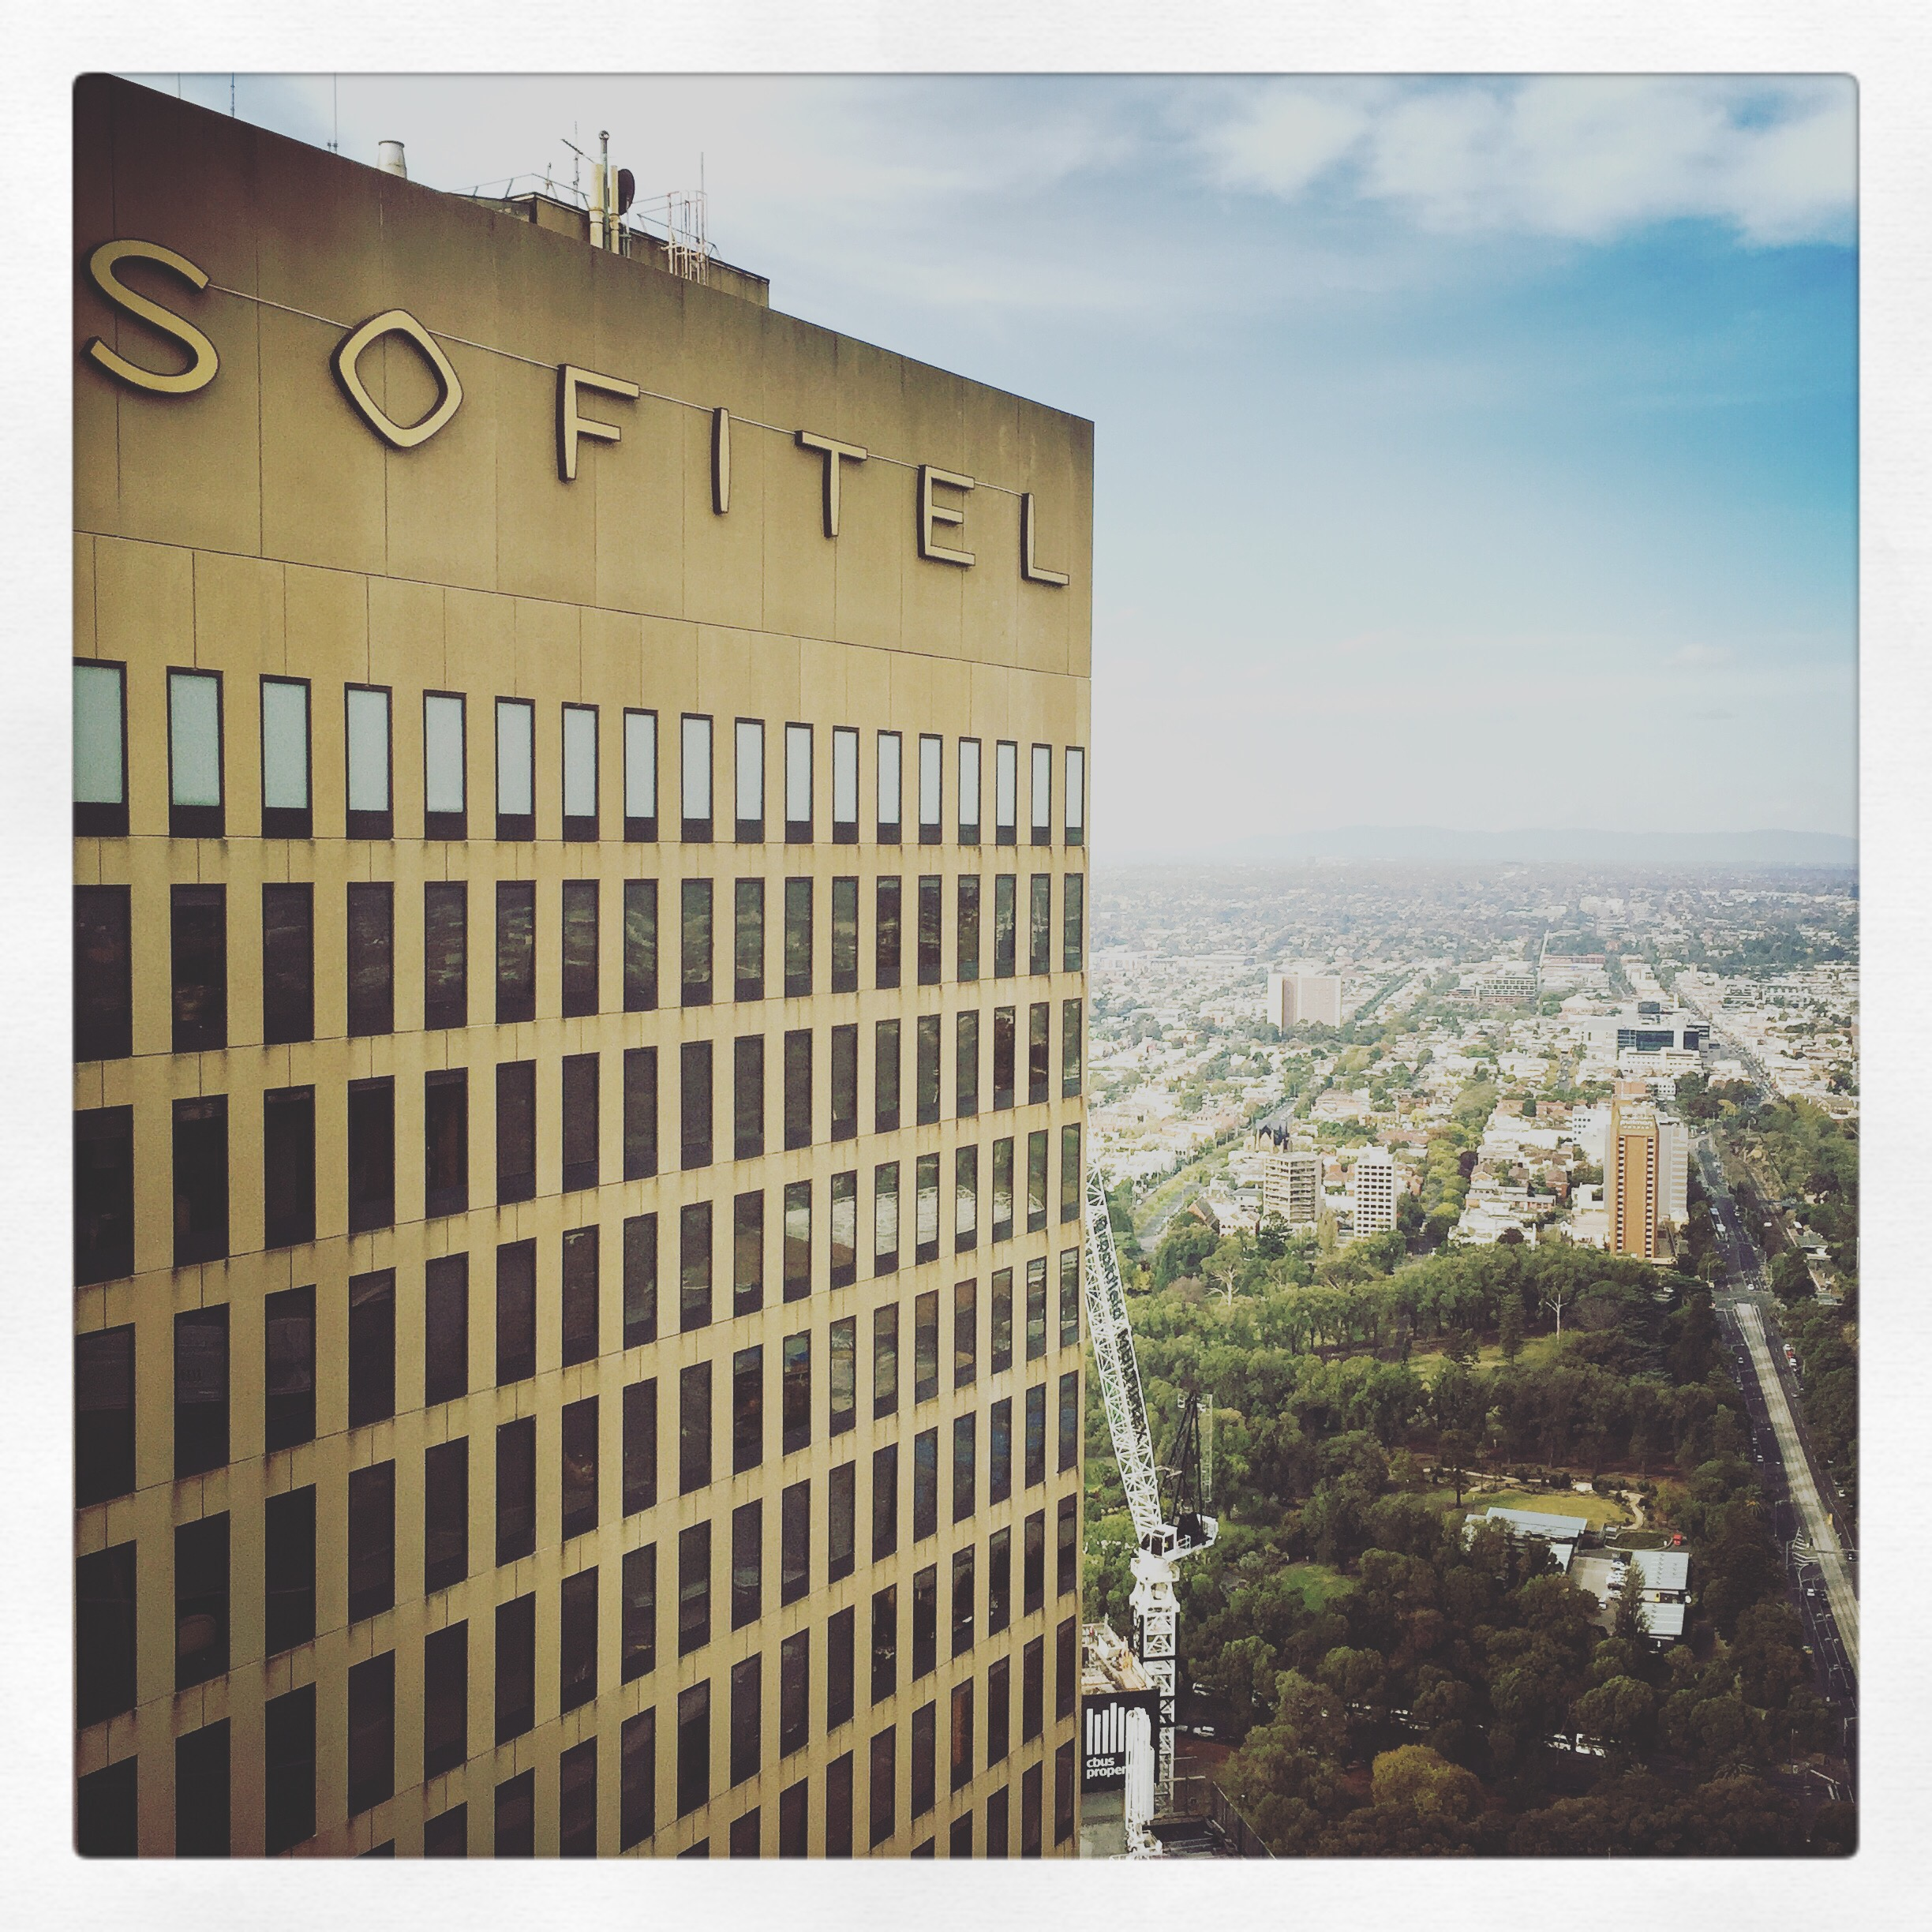 Day 1835. back at sofi…